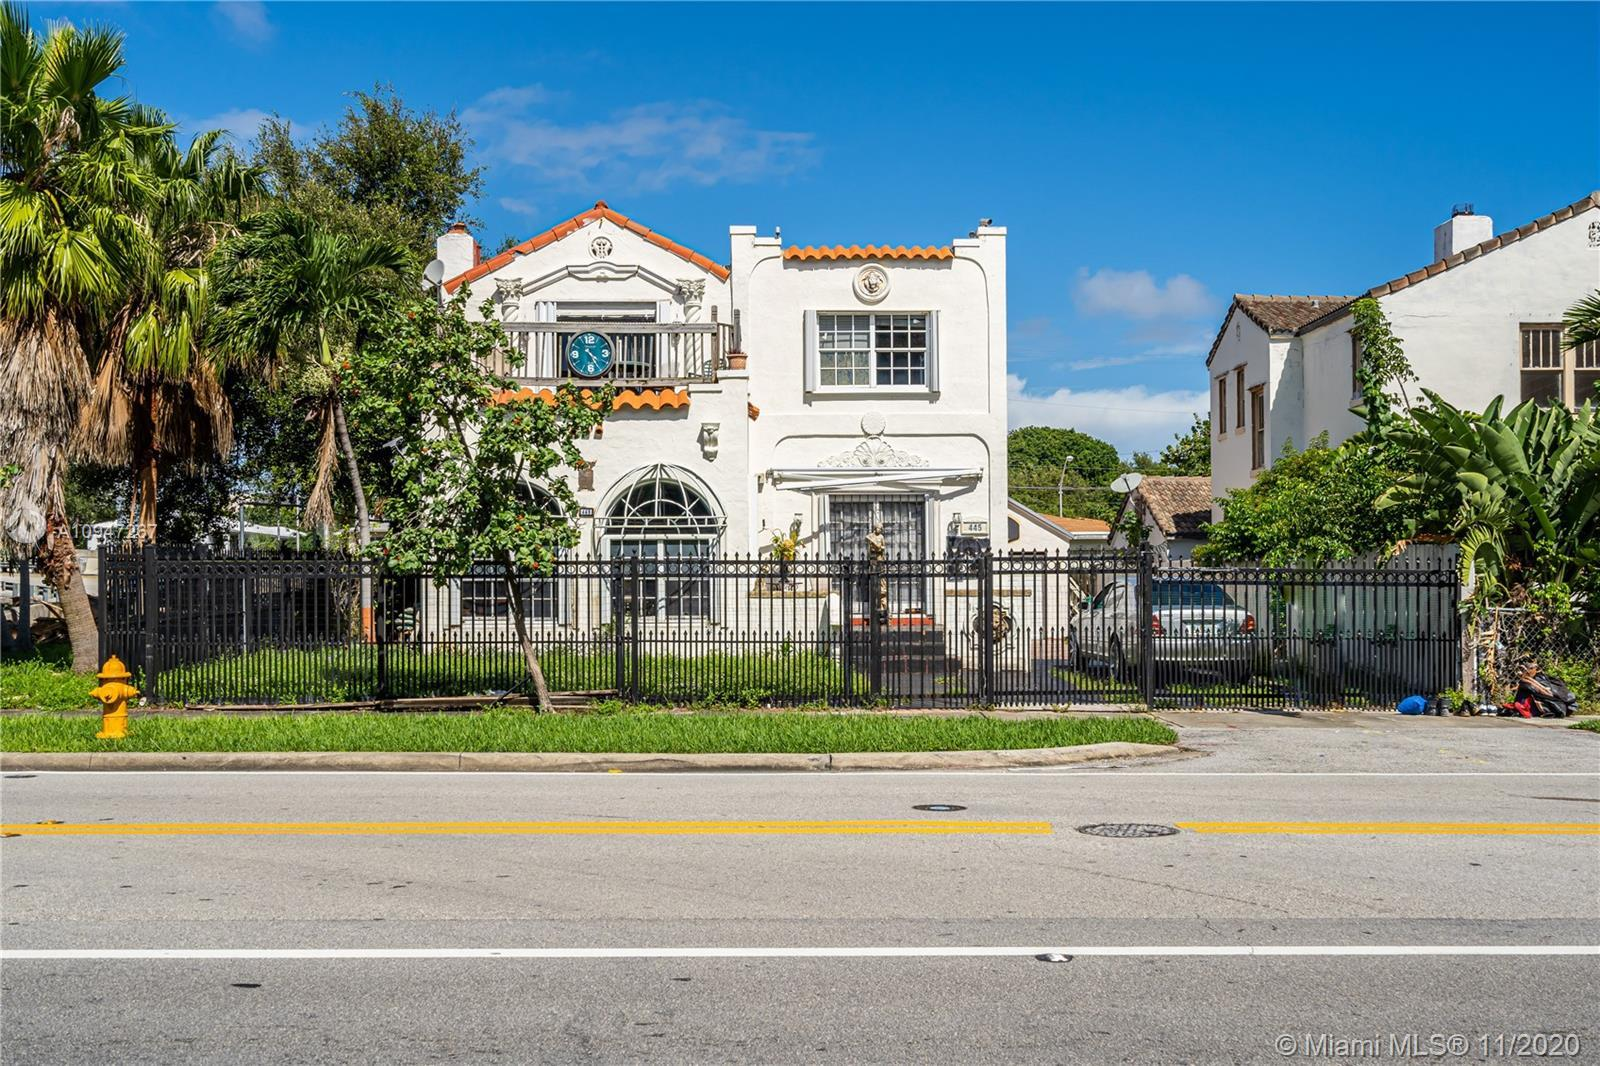 Portfolio of four prime properties only blocks away from Biscayne Blvd parcels for sale. The offerin